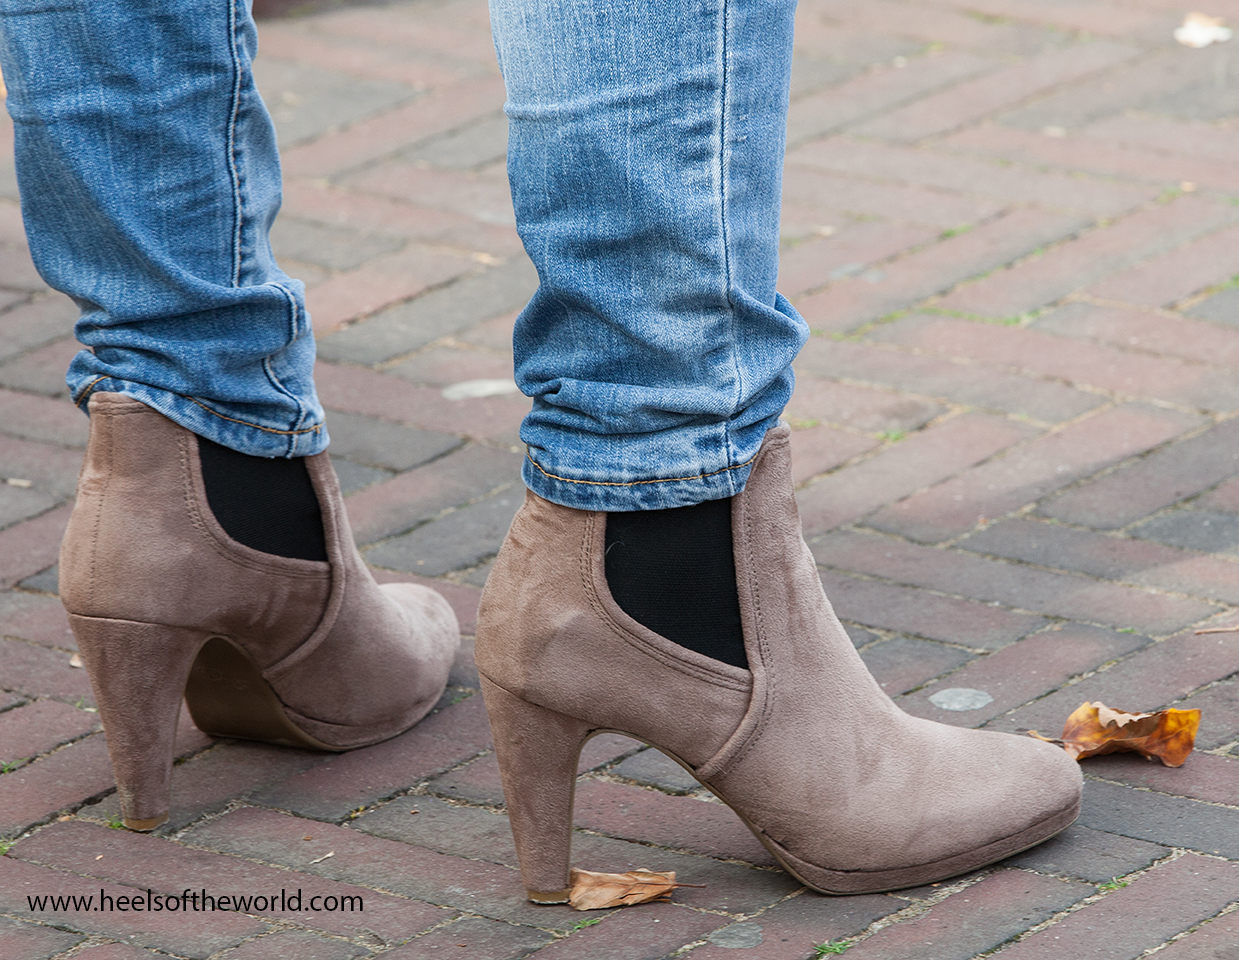 Dutch heels at streetfestival